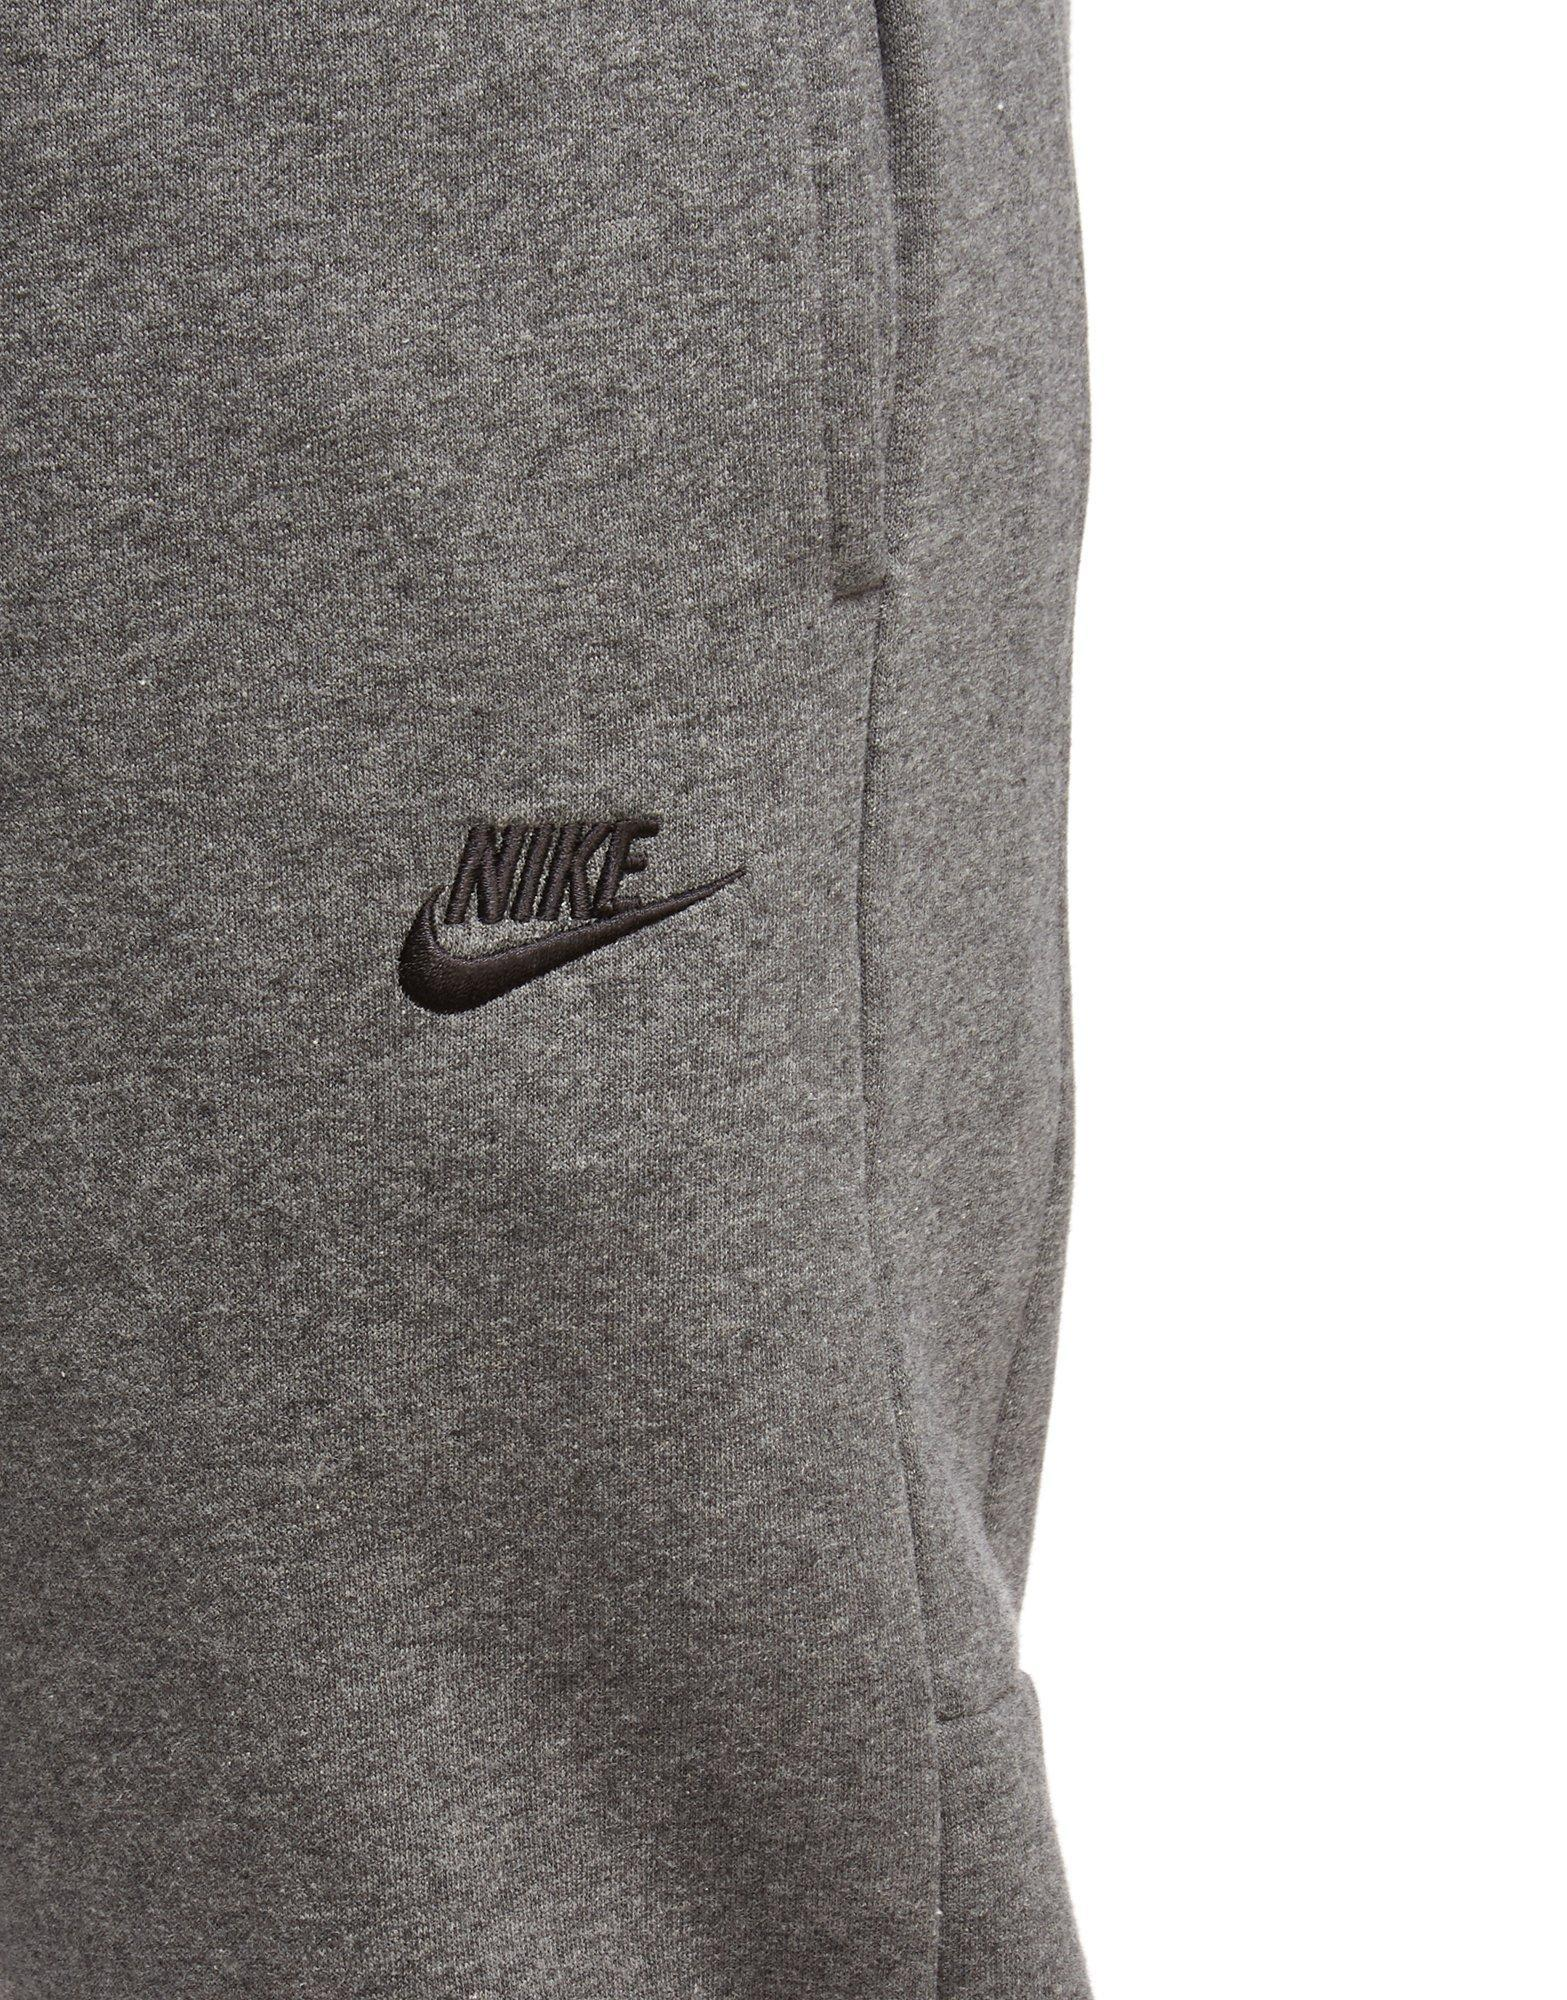 e0df321637 ... Set In Green 928119-395  lowest price 808d9 01745 Nike Season 2  Tracksuit in Gray for Men - Lyst ...